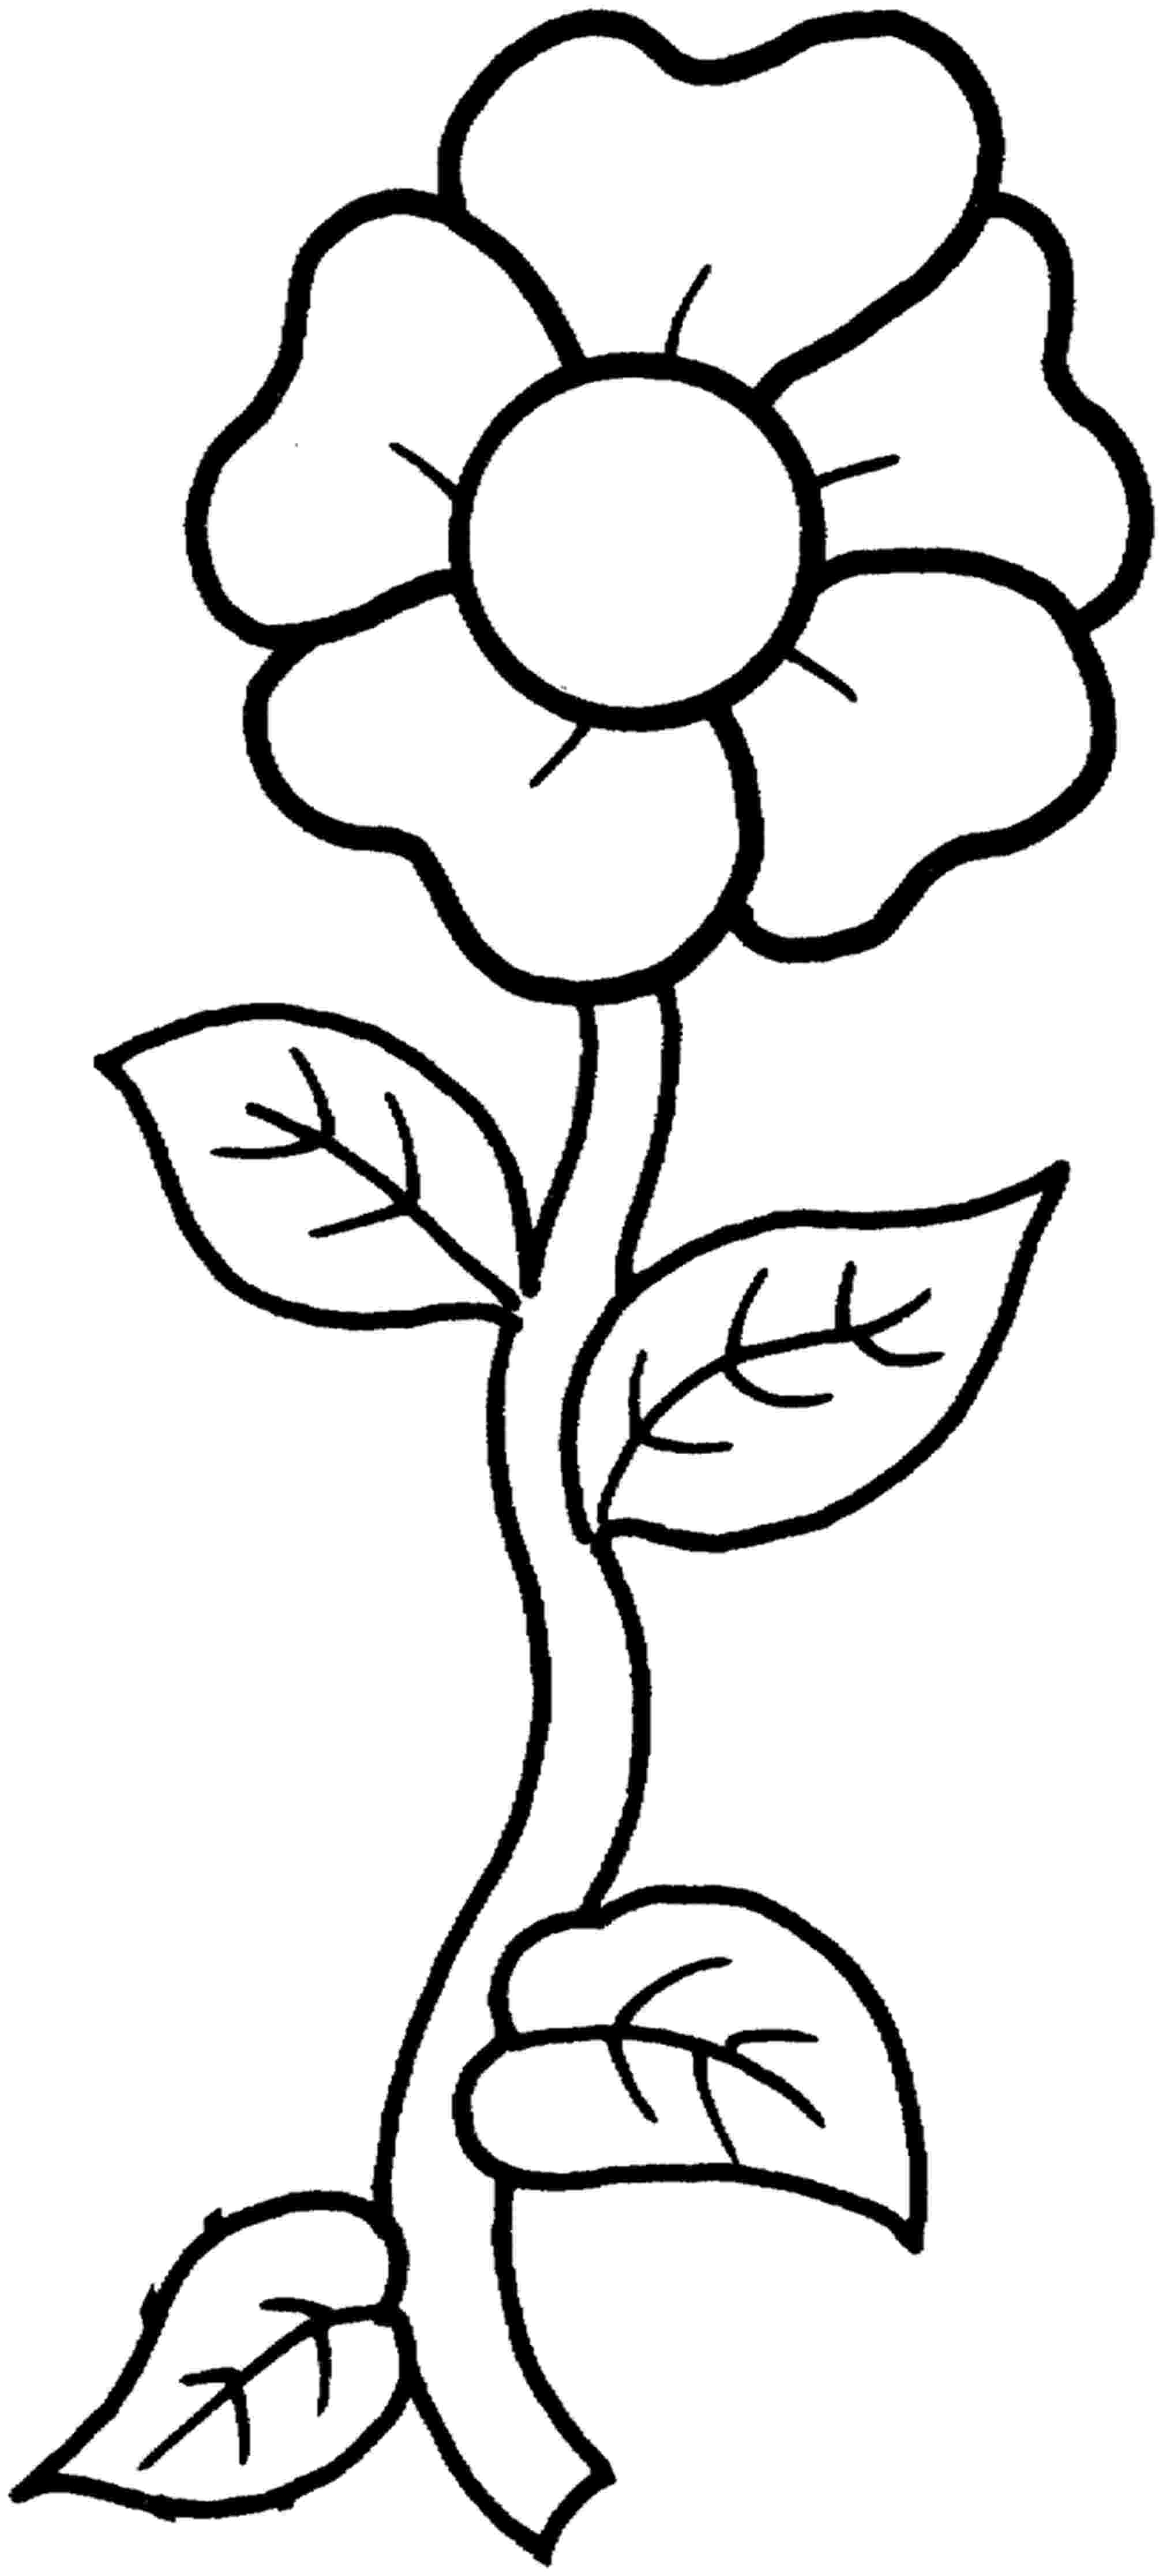 pictures of flowers to print and color free printable flower coloring pages for kids best flowers color pictures to and print of